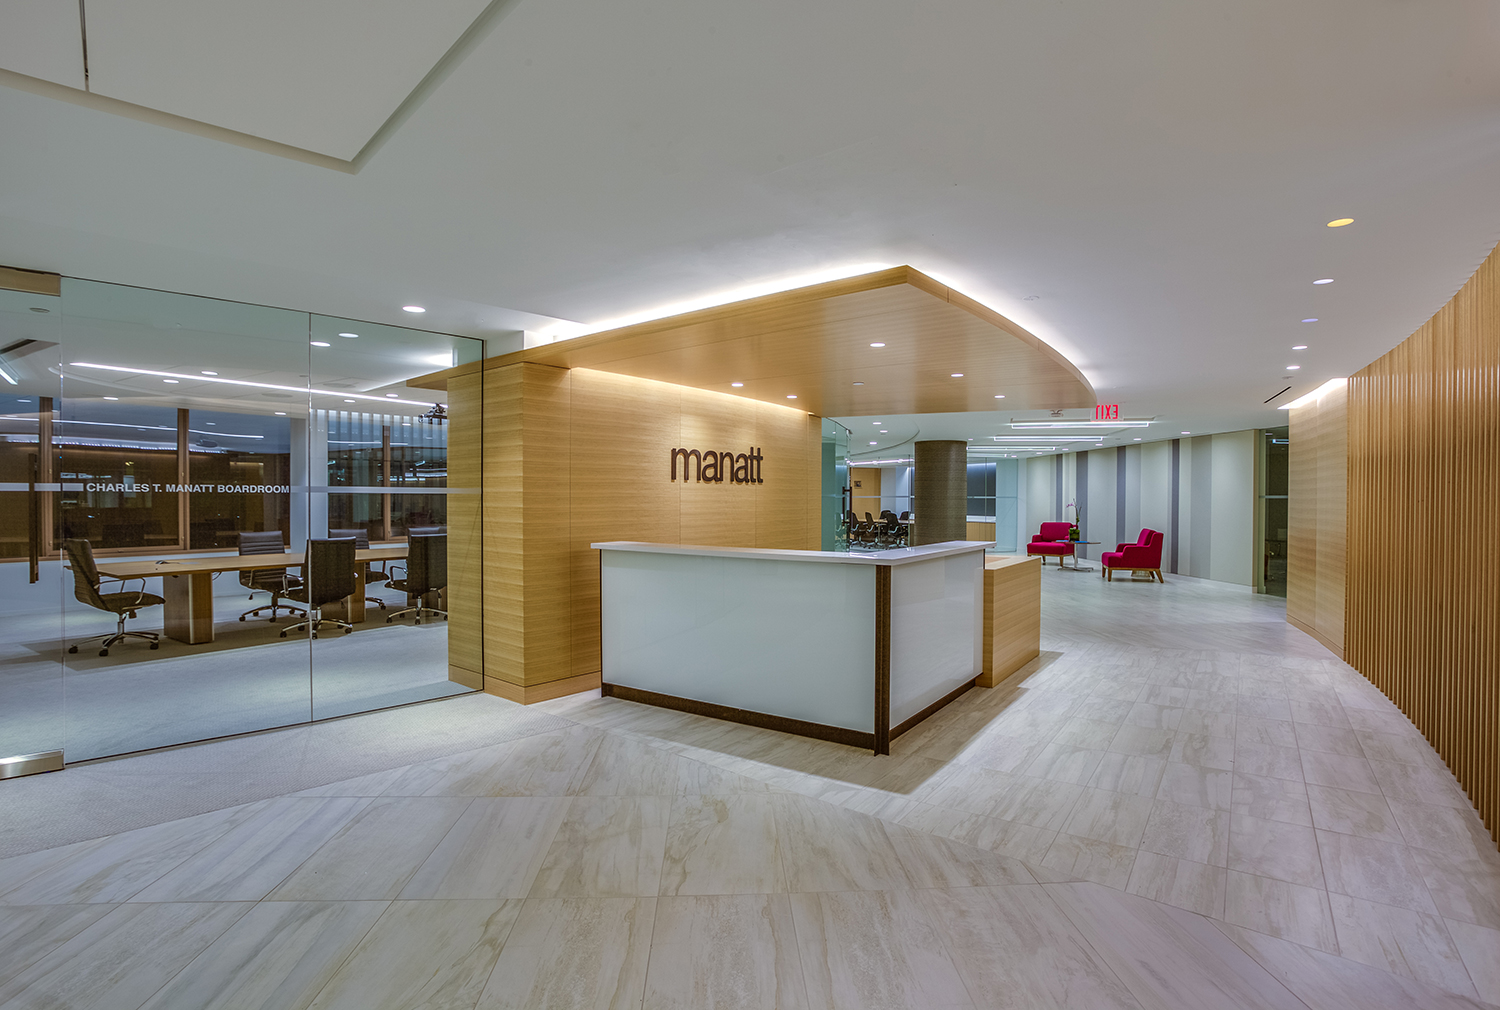 Mantt - A&S Corporate Office Work